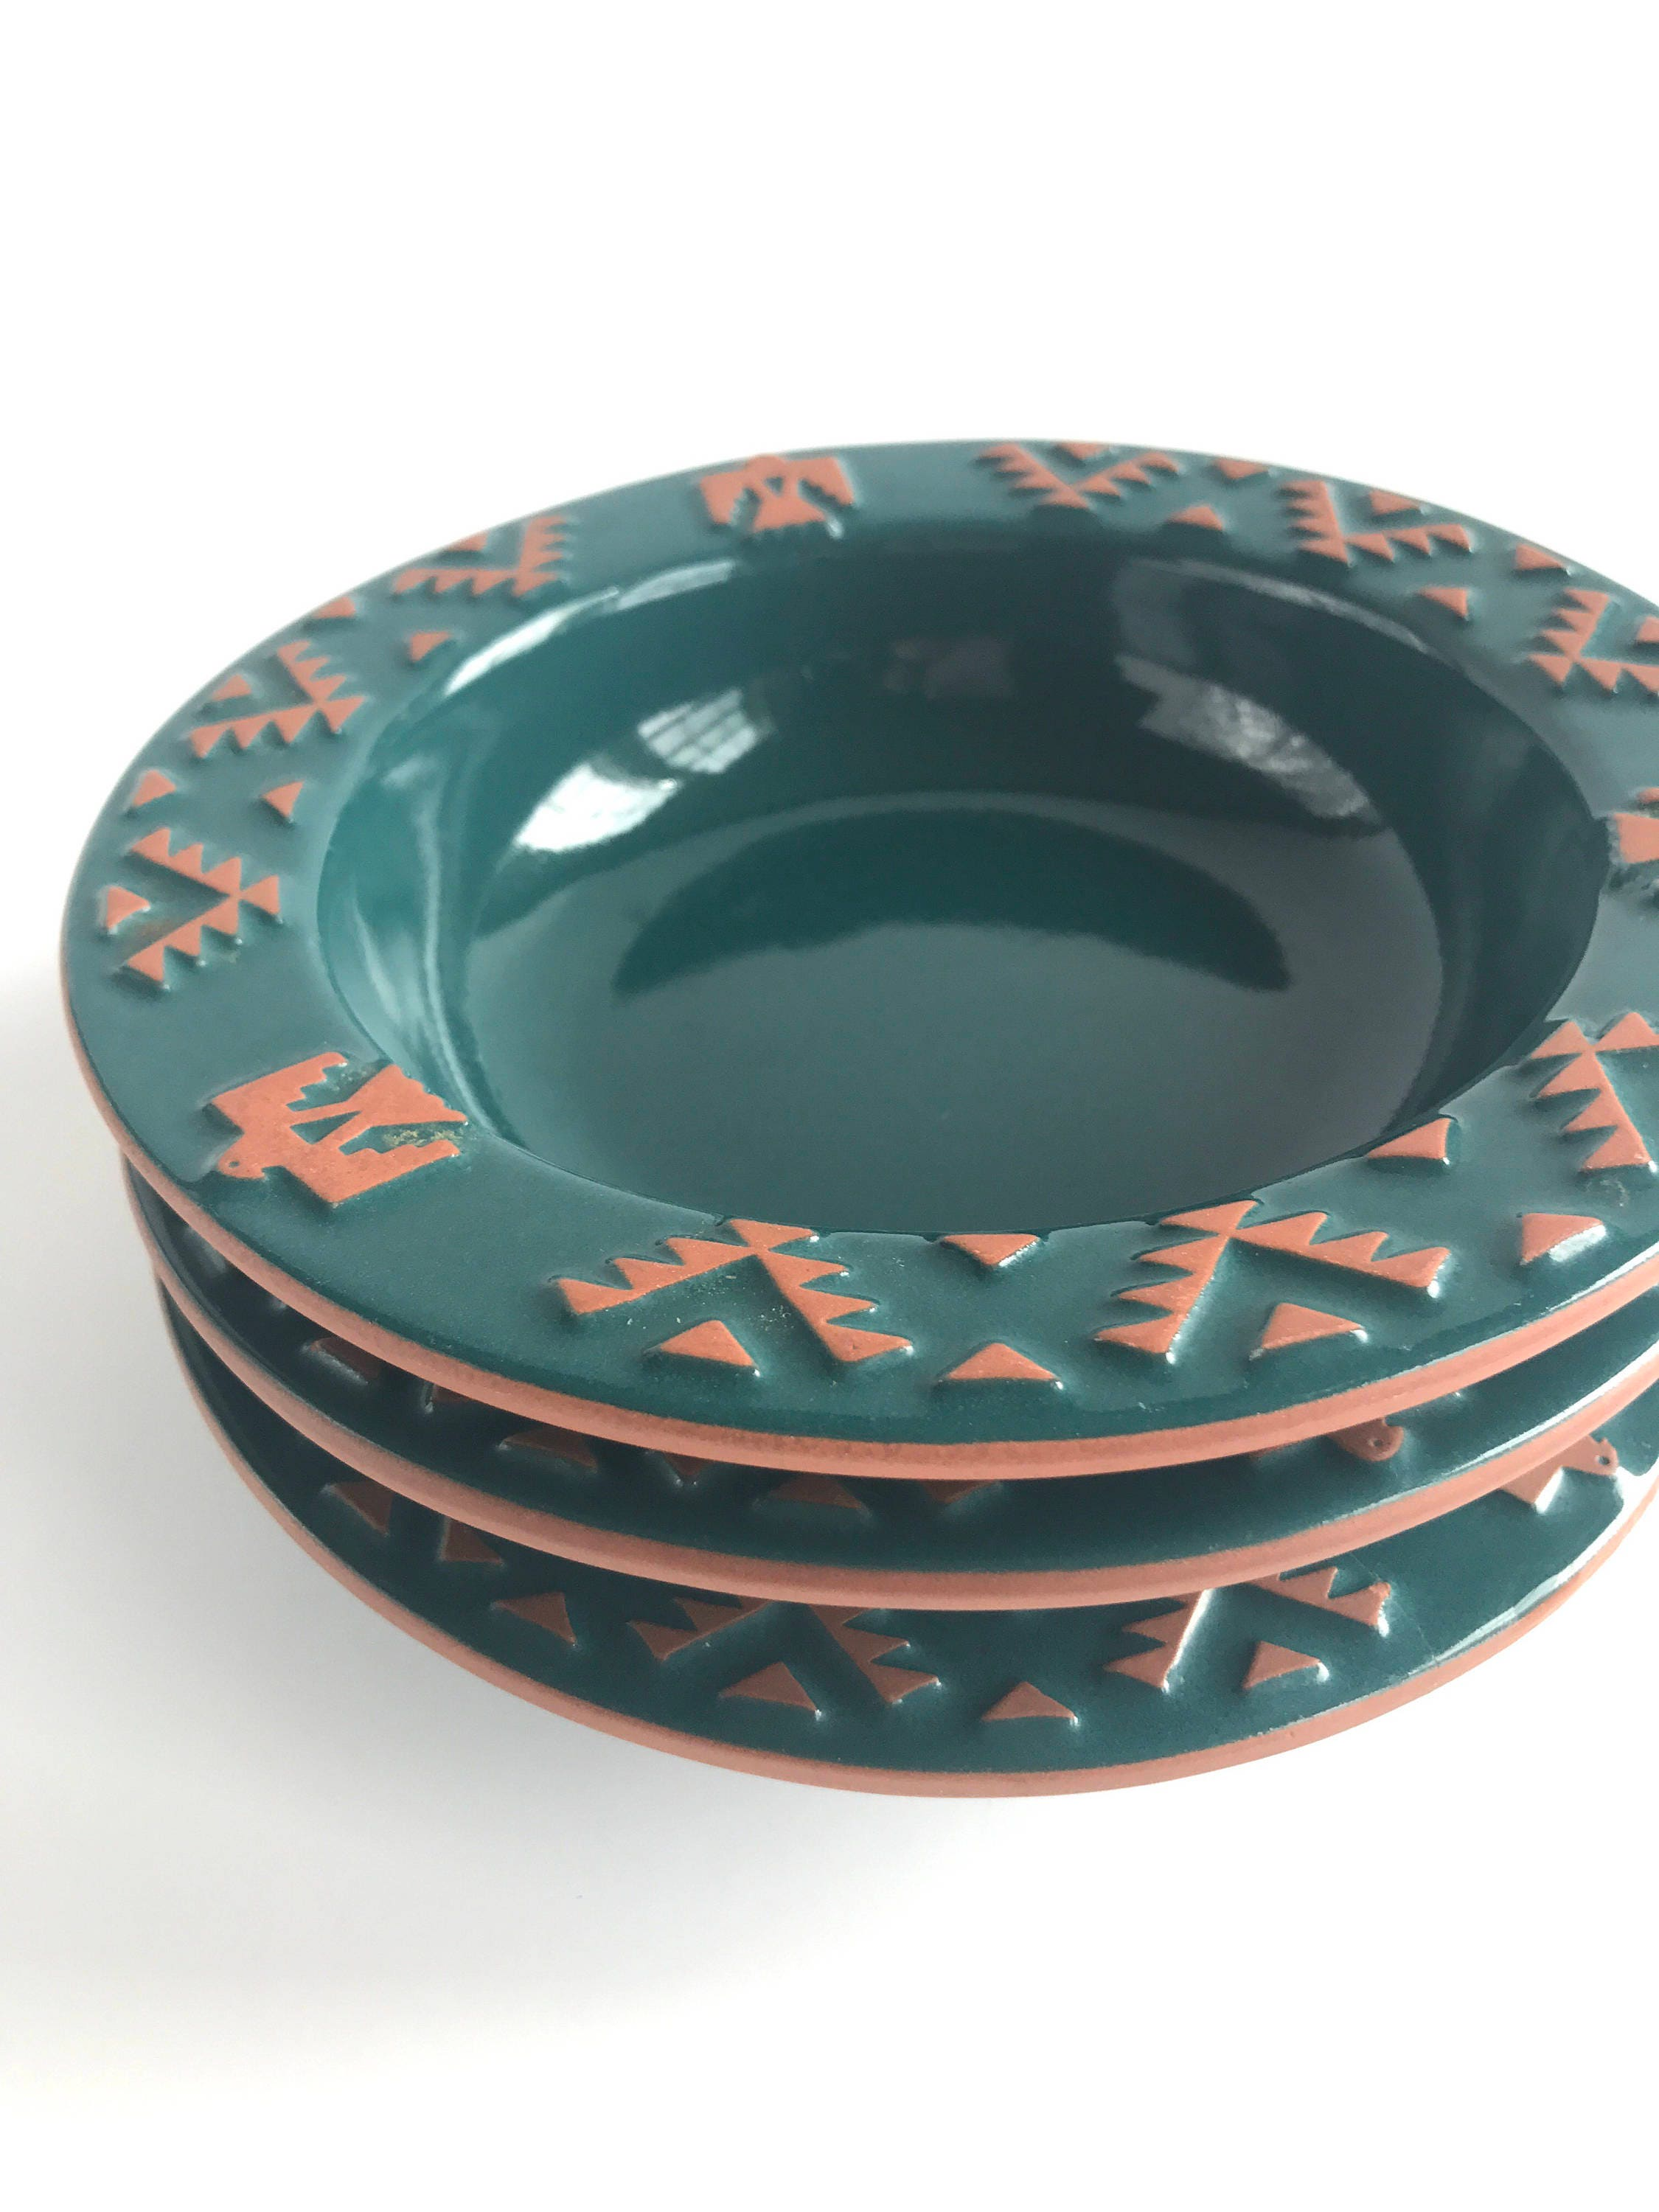 Vintage Frankoma Native American Teal Bowls Set of 3, 3 Discontinued ...